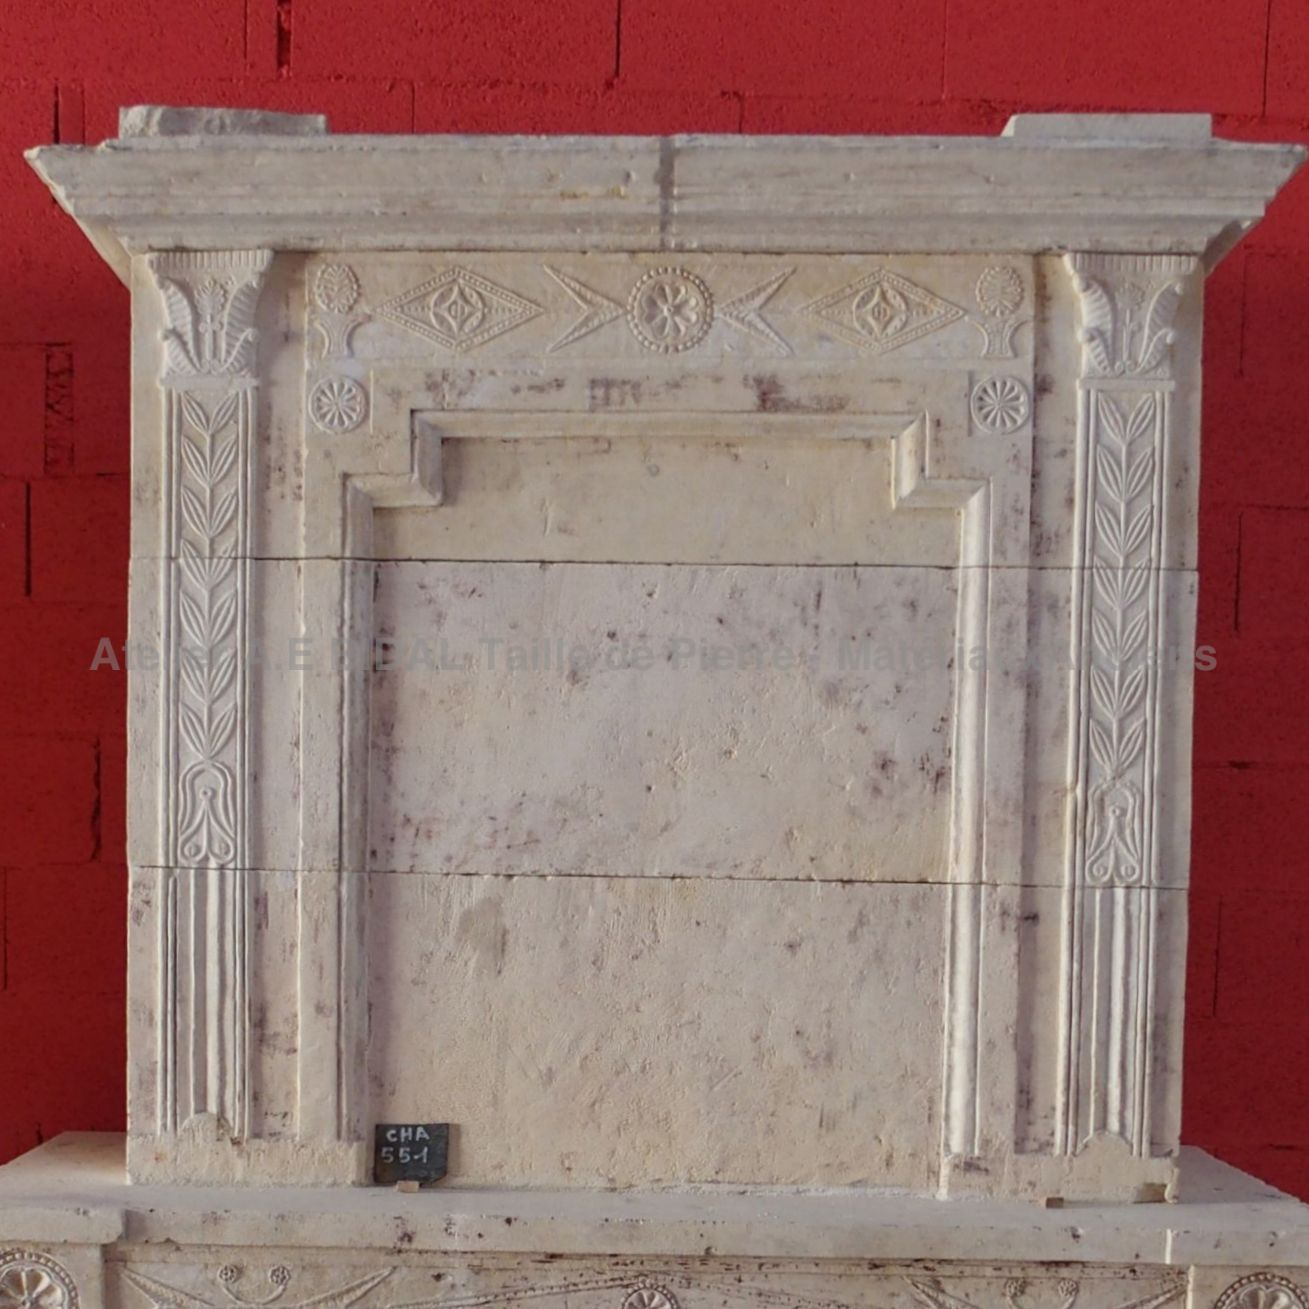 Louis XVI fireplace - traditional antique fireplace made of natural stone.